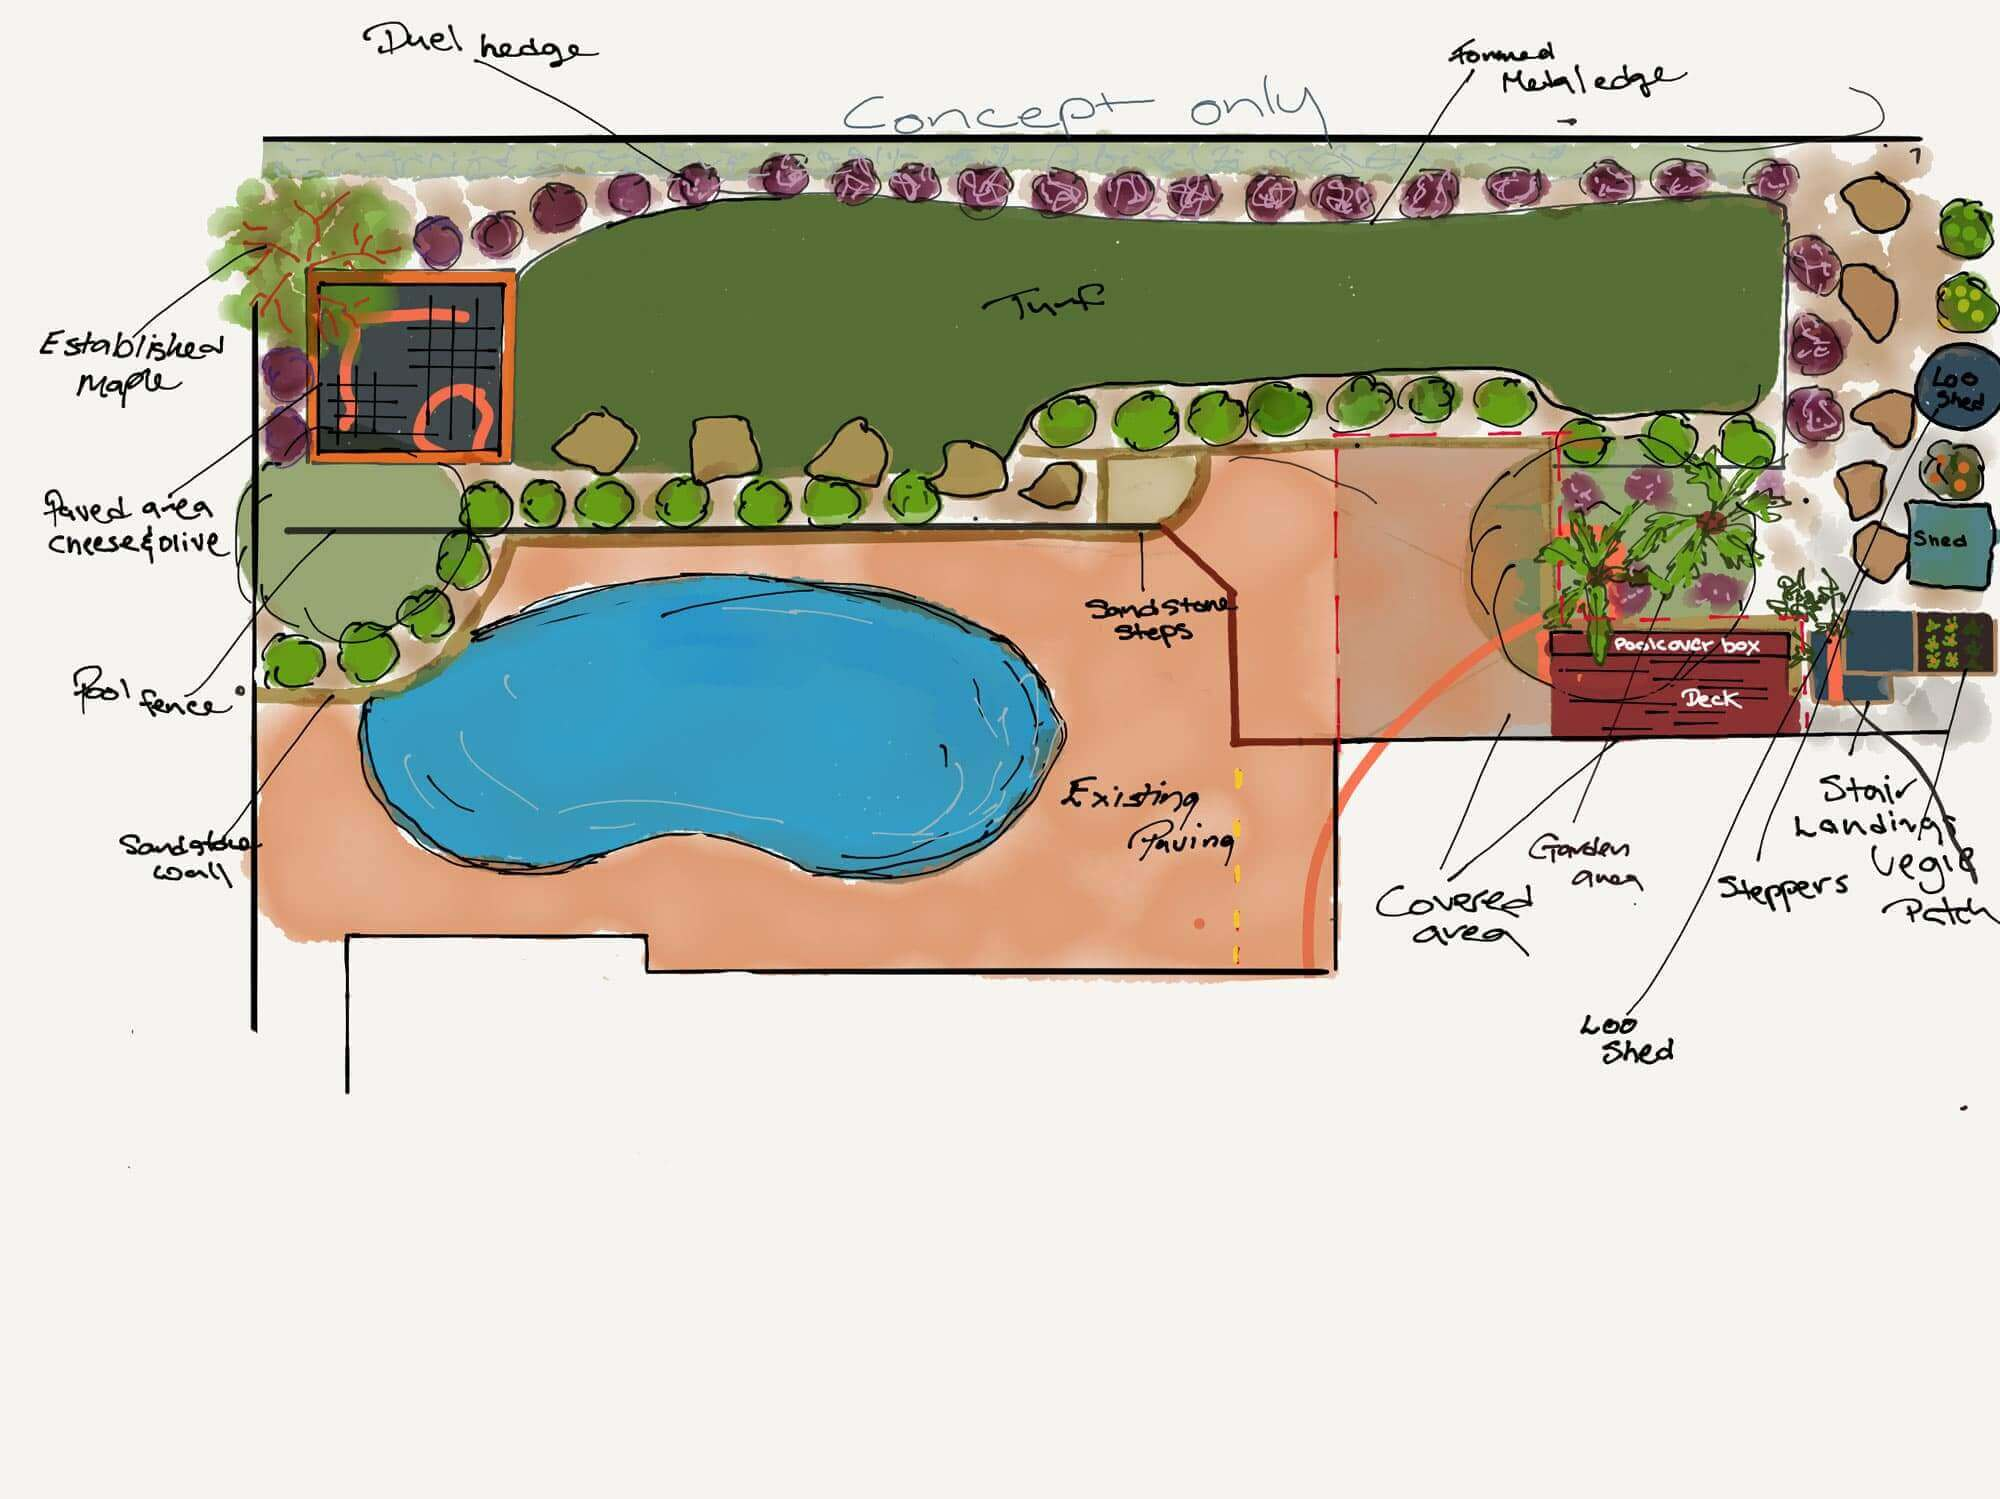 Gardengigs-Project-Concepts-and-Designs-with-Swimming-Pool